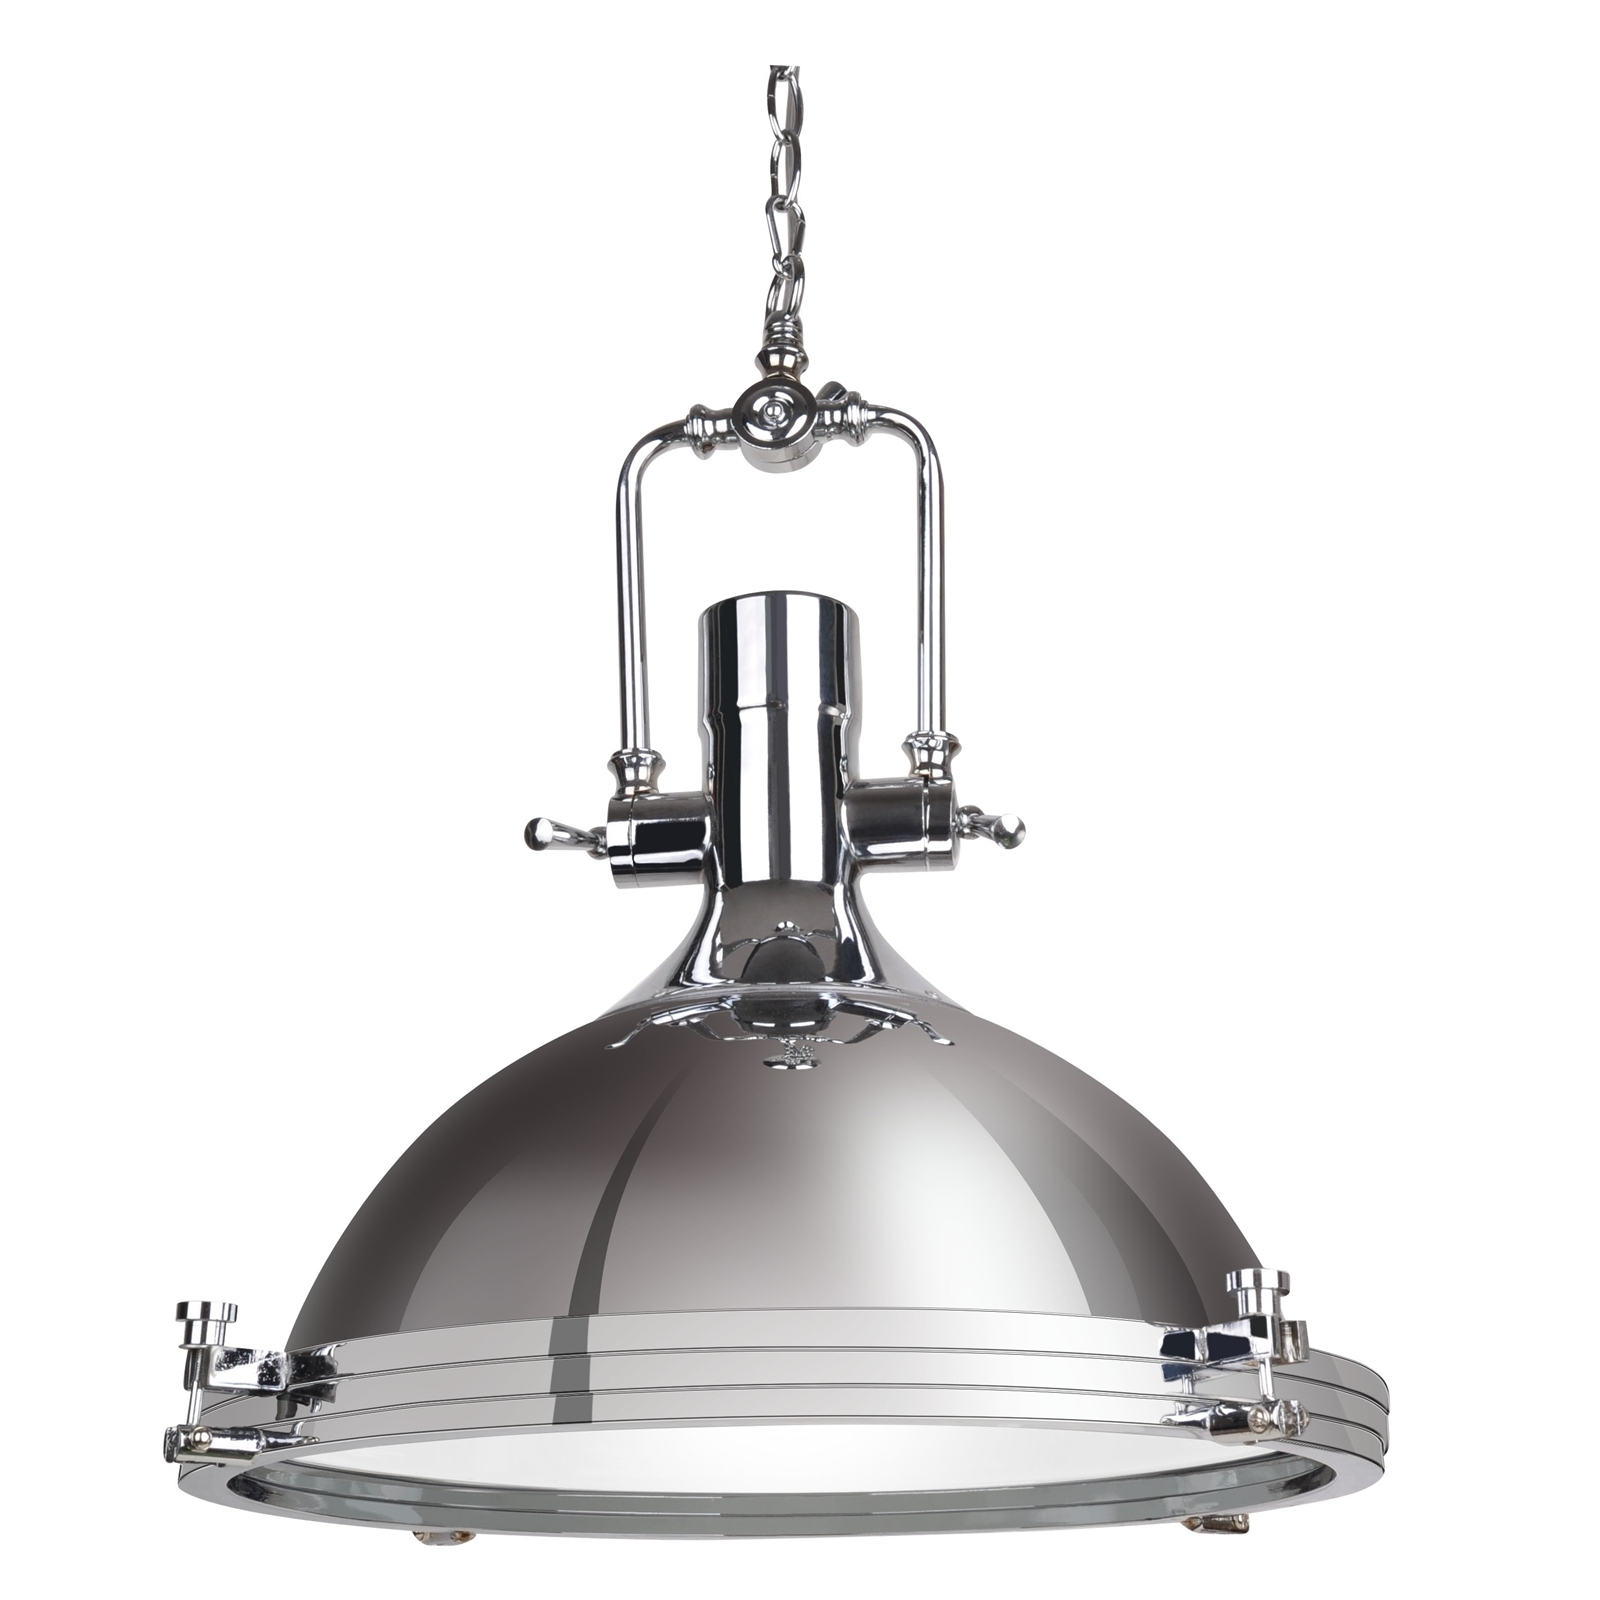 Find Cafe Lighting 40Cm 240V Turner Pendant Light – Chrome At Regarding Most Recently Released Outdoor Ceiling Lights At Bunnings (Gallery 2 of 20)